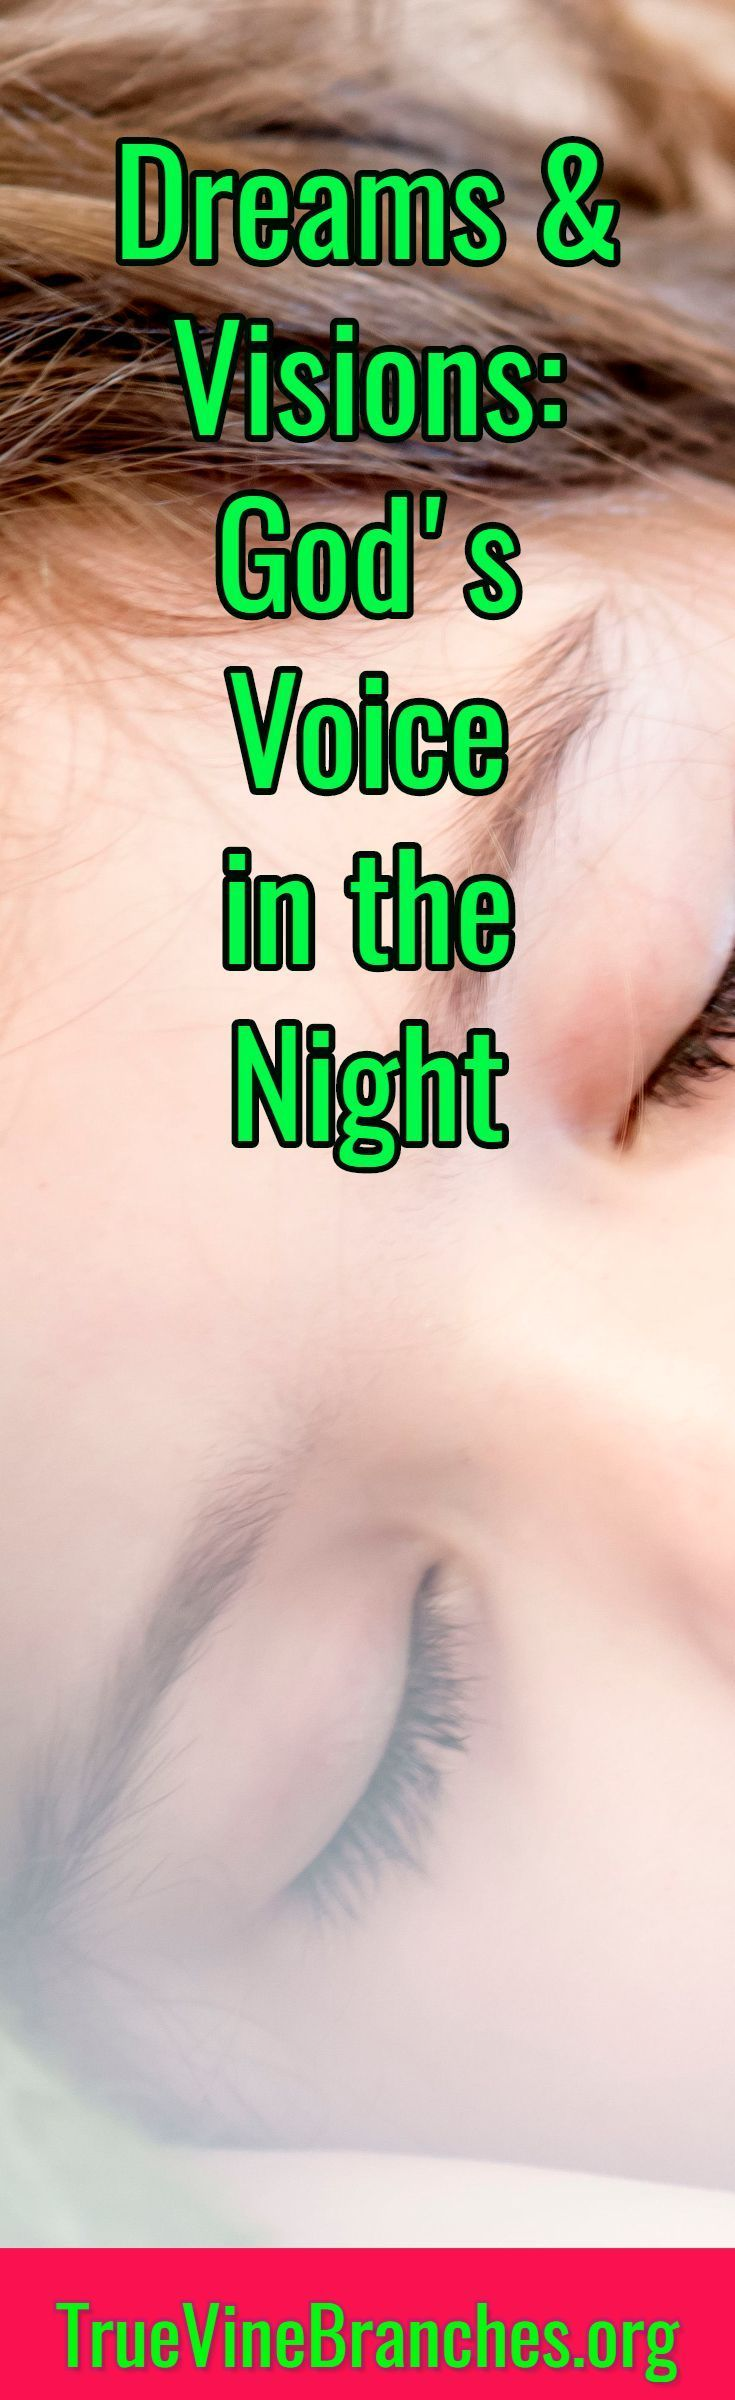 Learn about dreams and visions in the day as well as the night. Hearing God's voice, biblical dream interpretation, faith, encouragement, inspiration, love, hope.